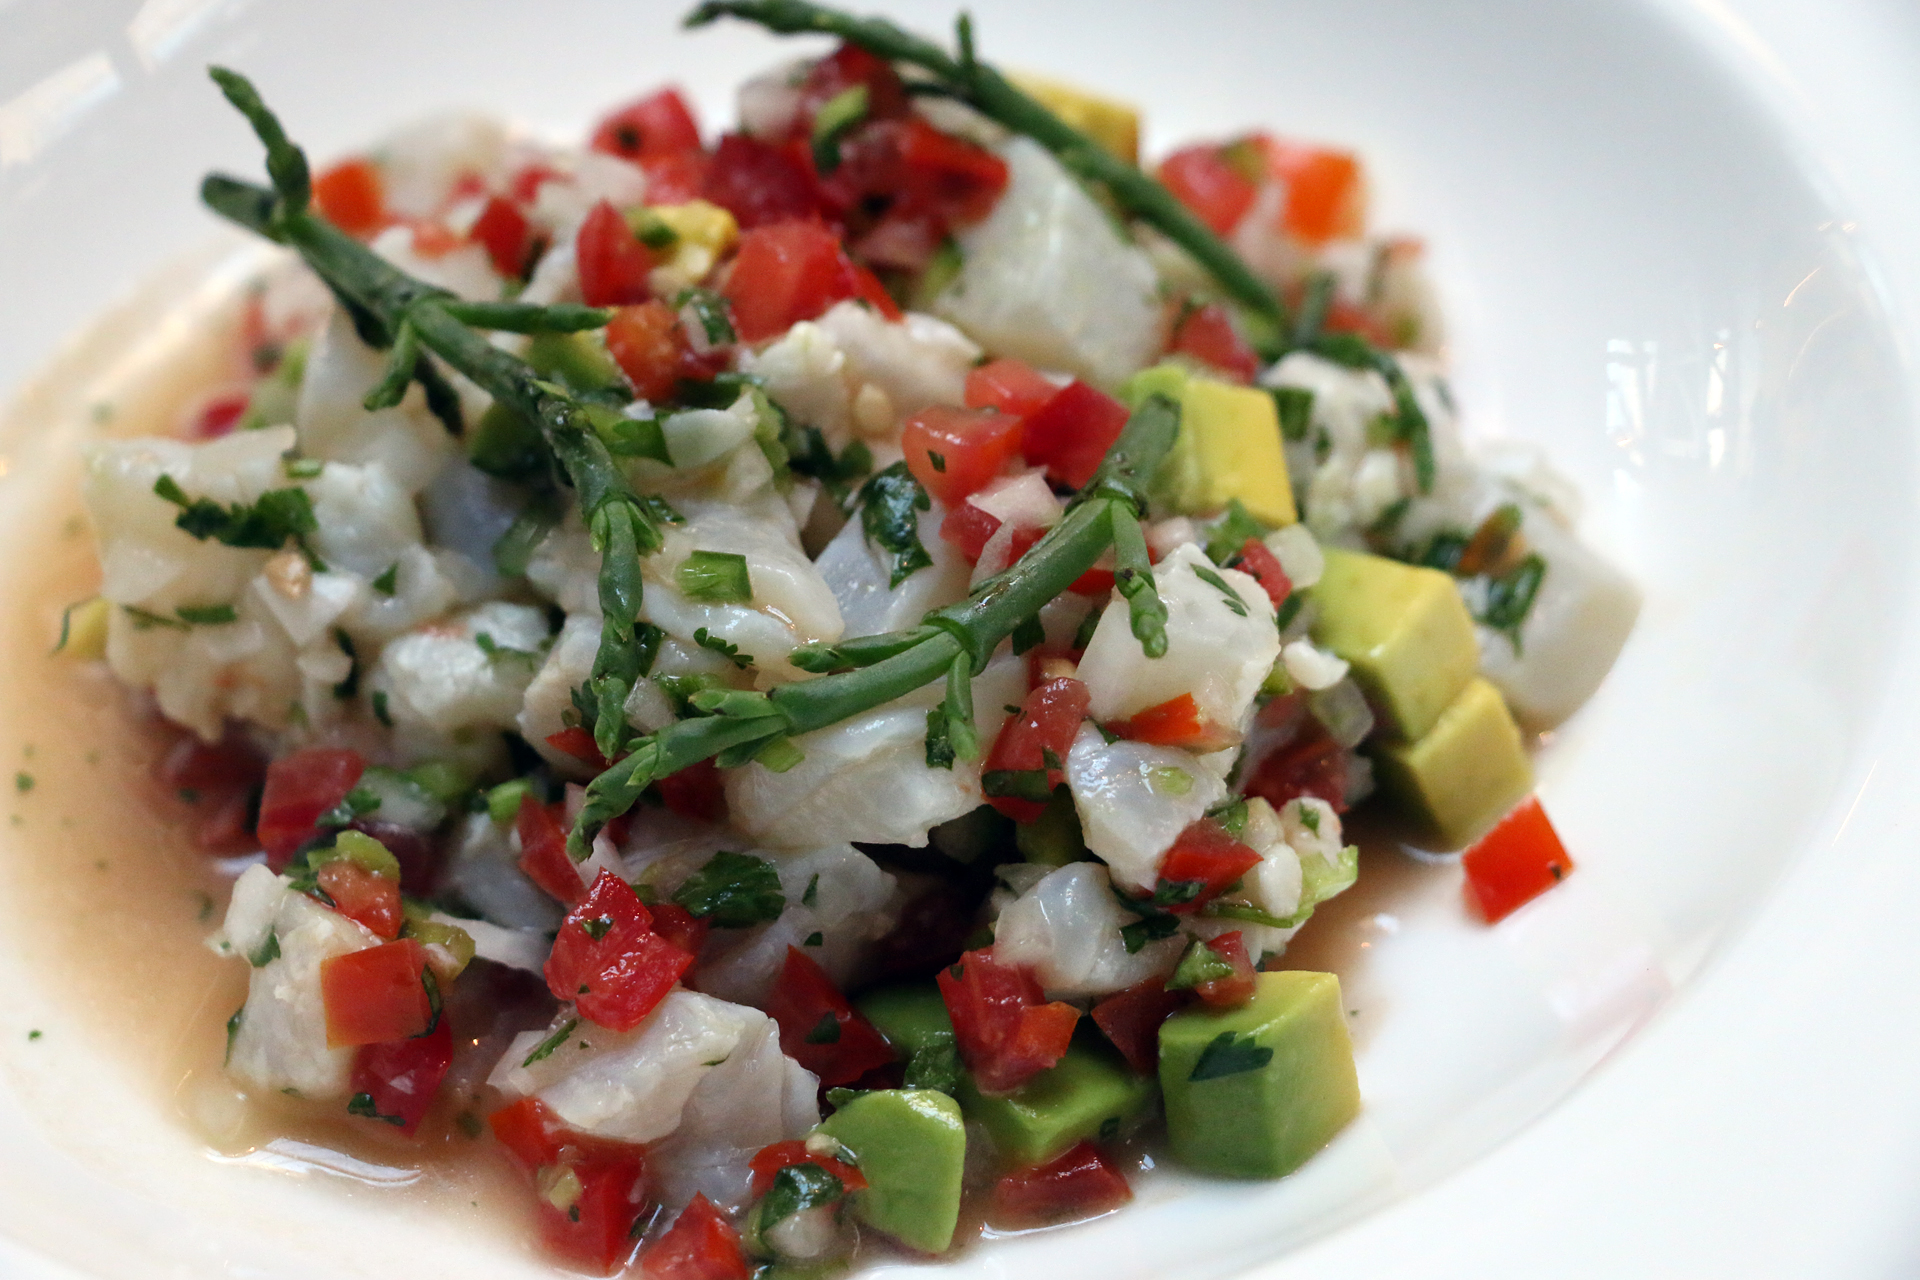 Cala's Halibut ceviche with sea beans and avocado